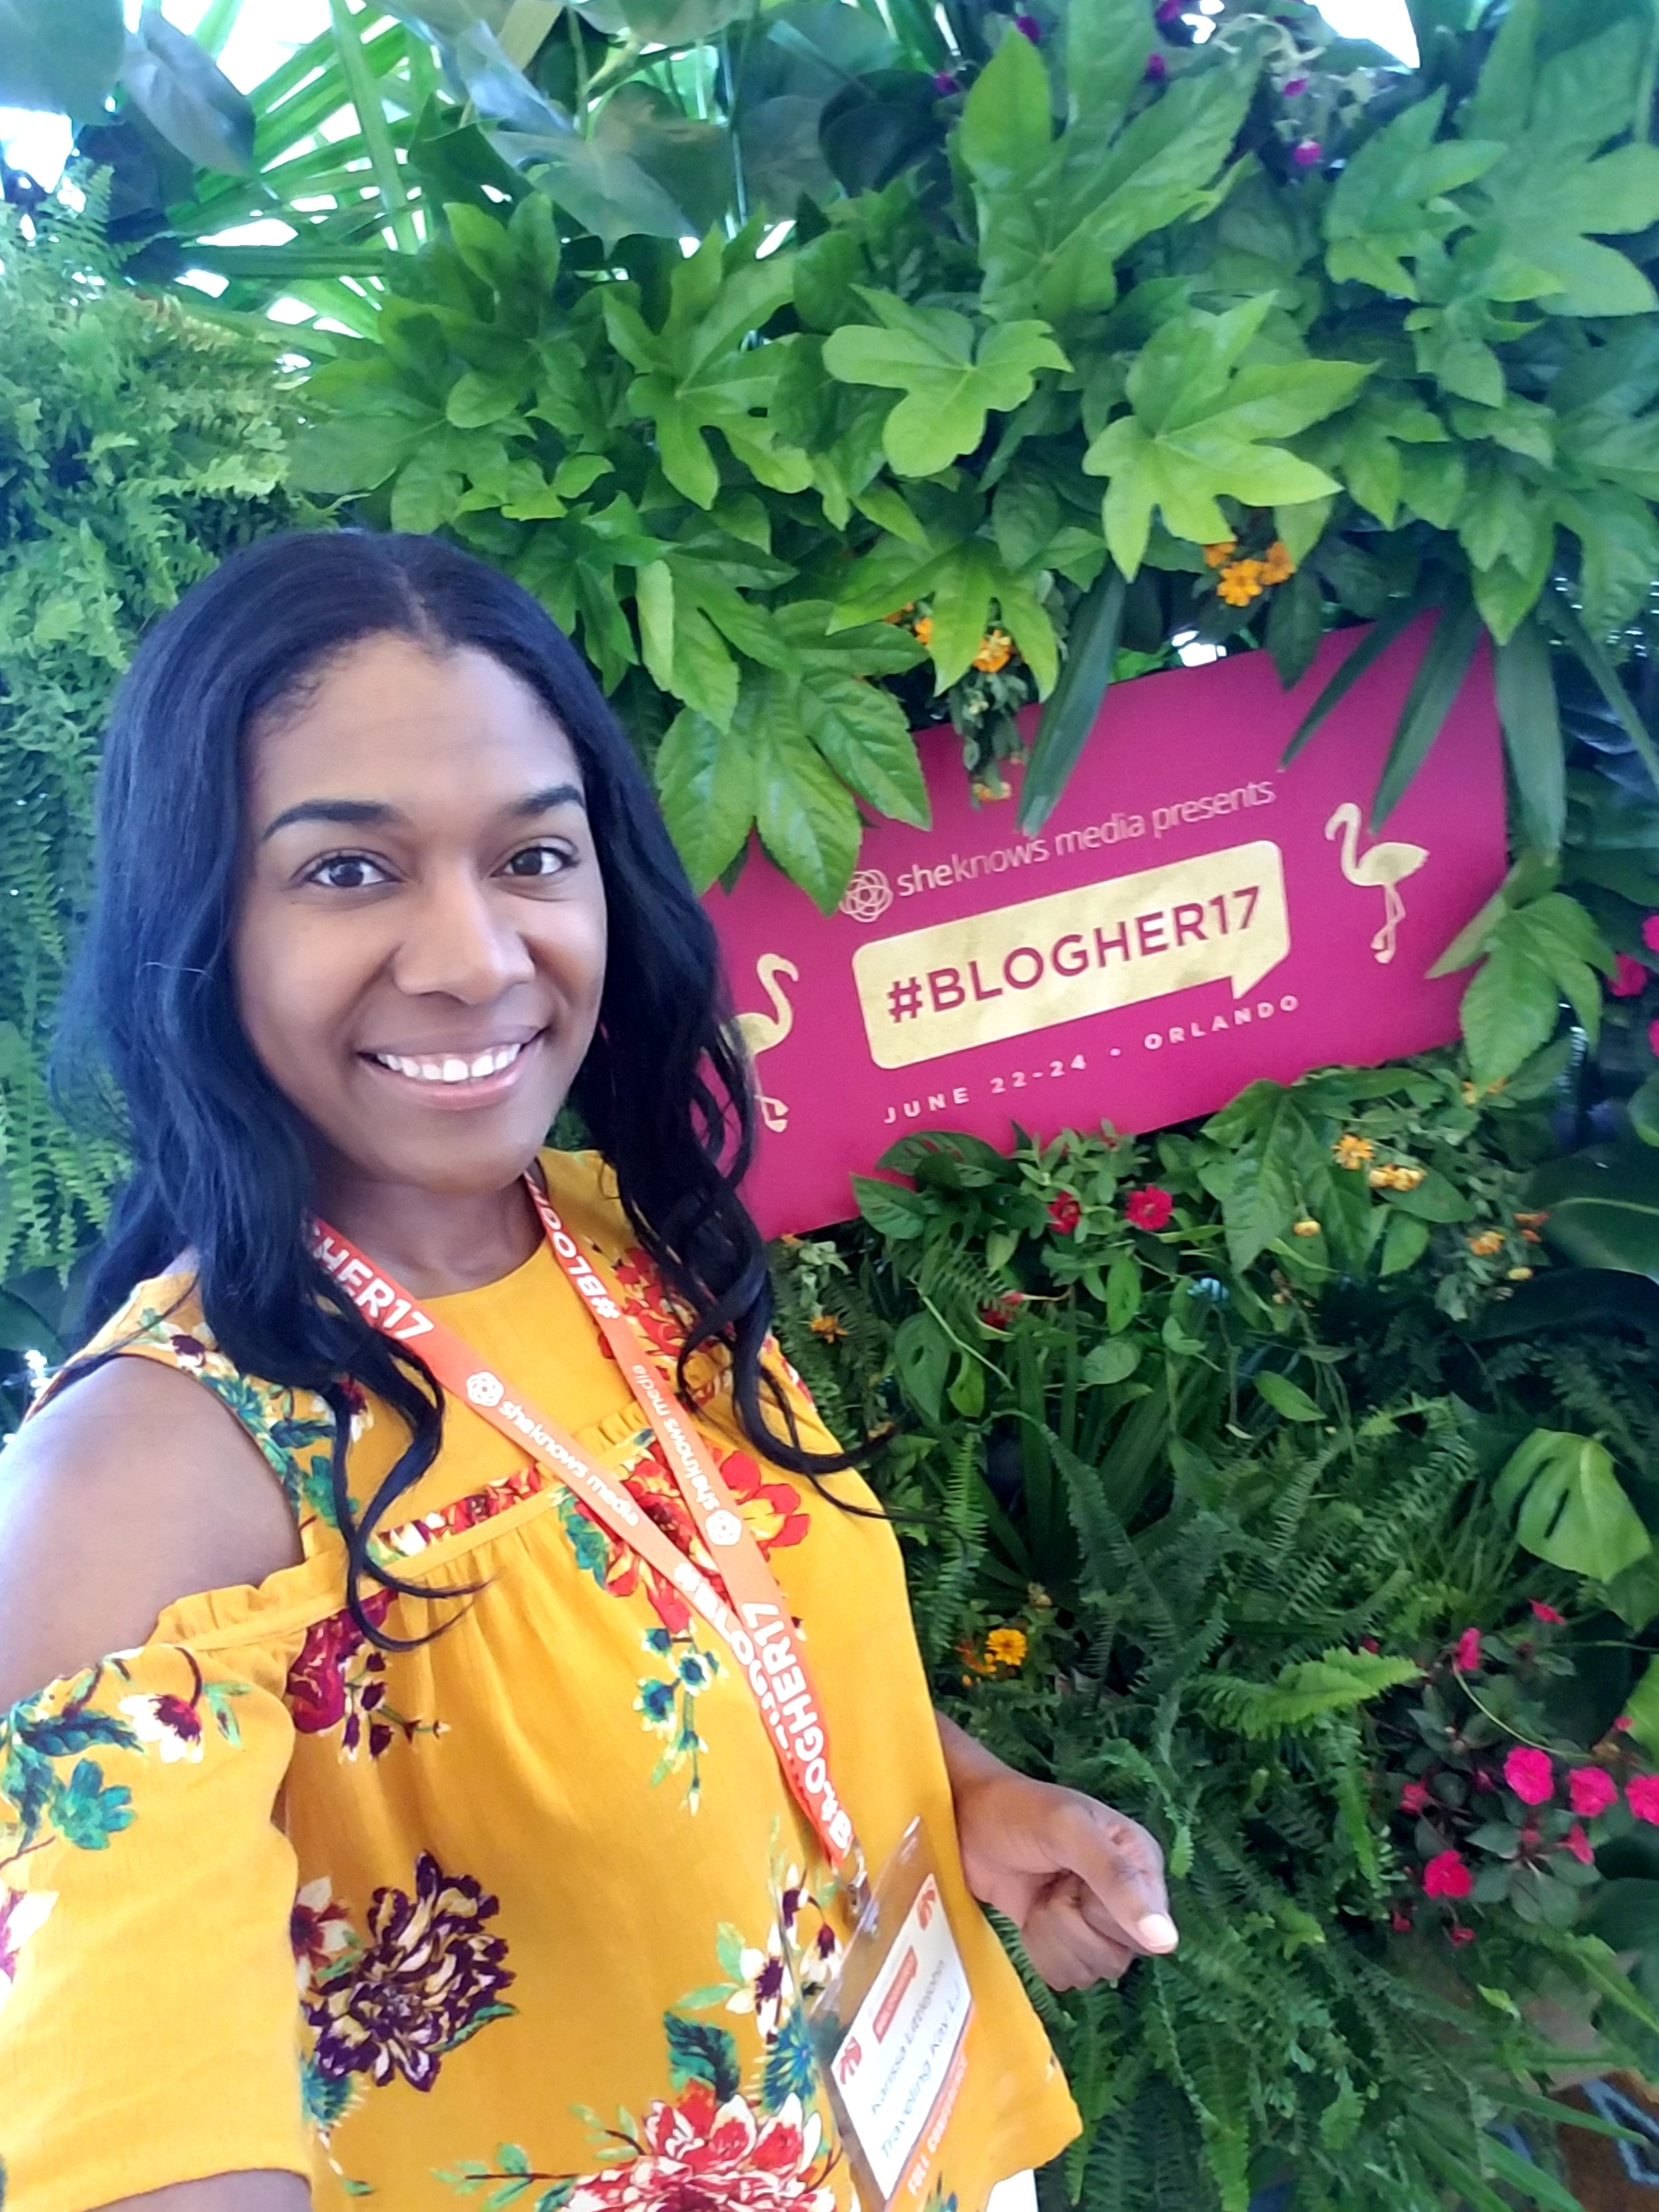 BlogHer17 Conference in Orlando Florida